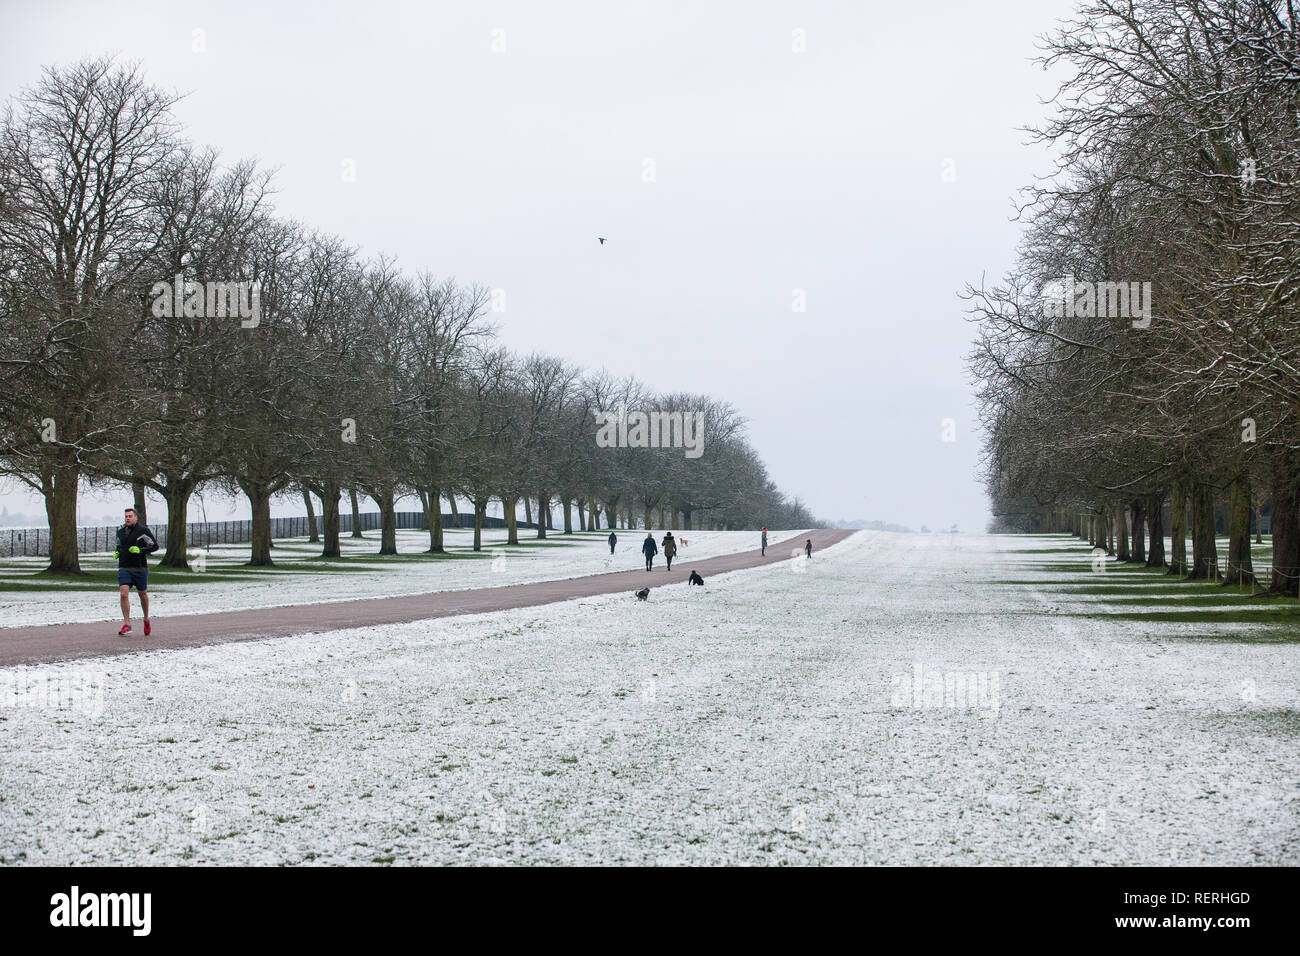 Windsor, UK. 23rd Jan, 2019. UK Weather: The year's first sprinkling of snow alongside the Long Walk in Windsor Great Park. Today's forecast for Berkshire is cold, with sunny spells and a risk of wintry showers. Motorists have been warned to take care because of hazardous driving conditions. Credit: Mark Kerrison/Alamy Live News Stock Photo